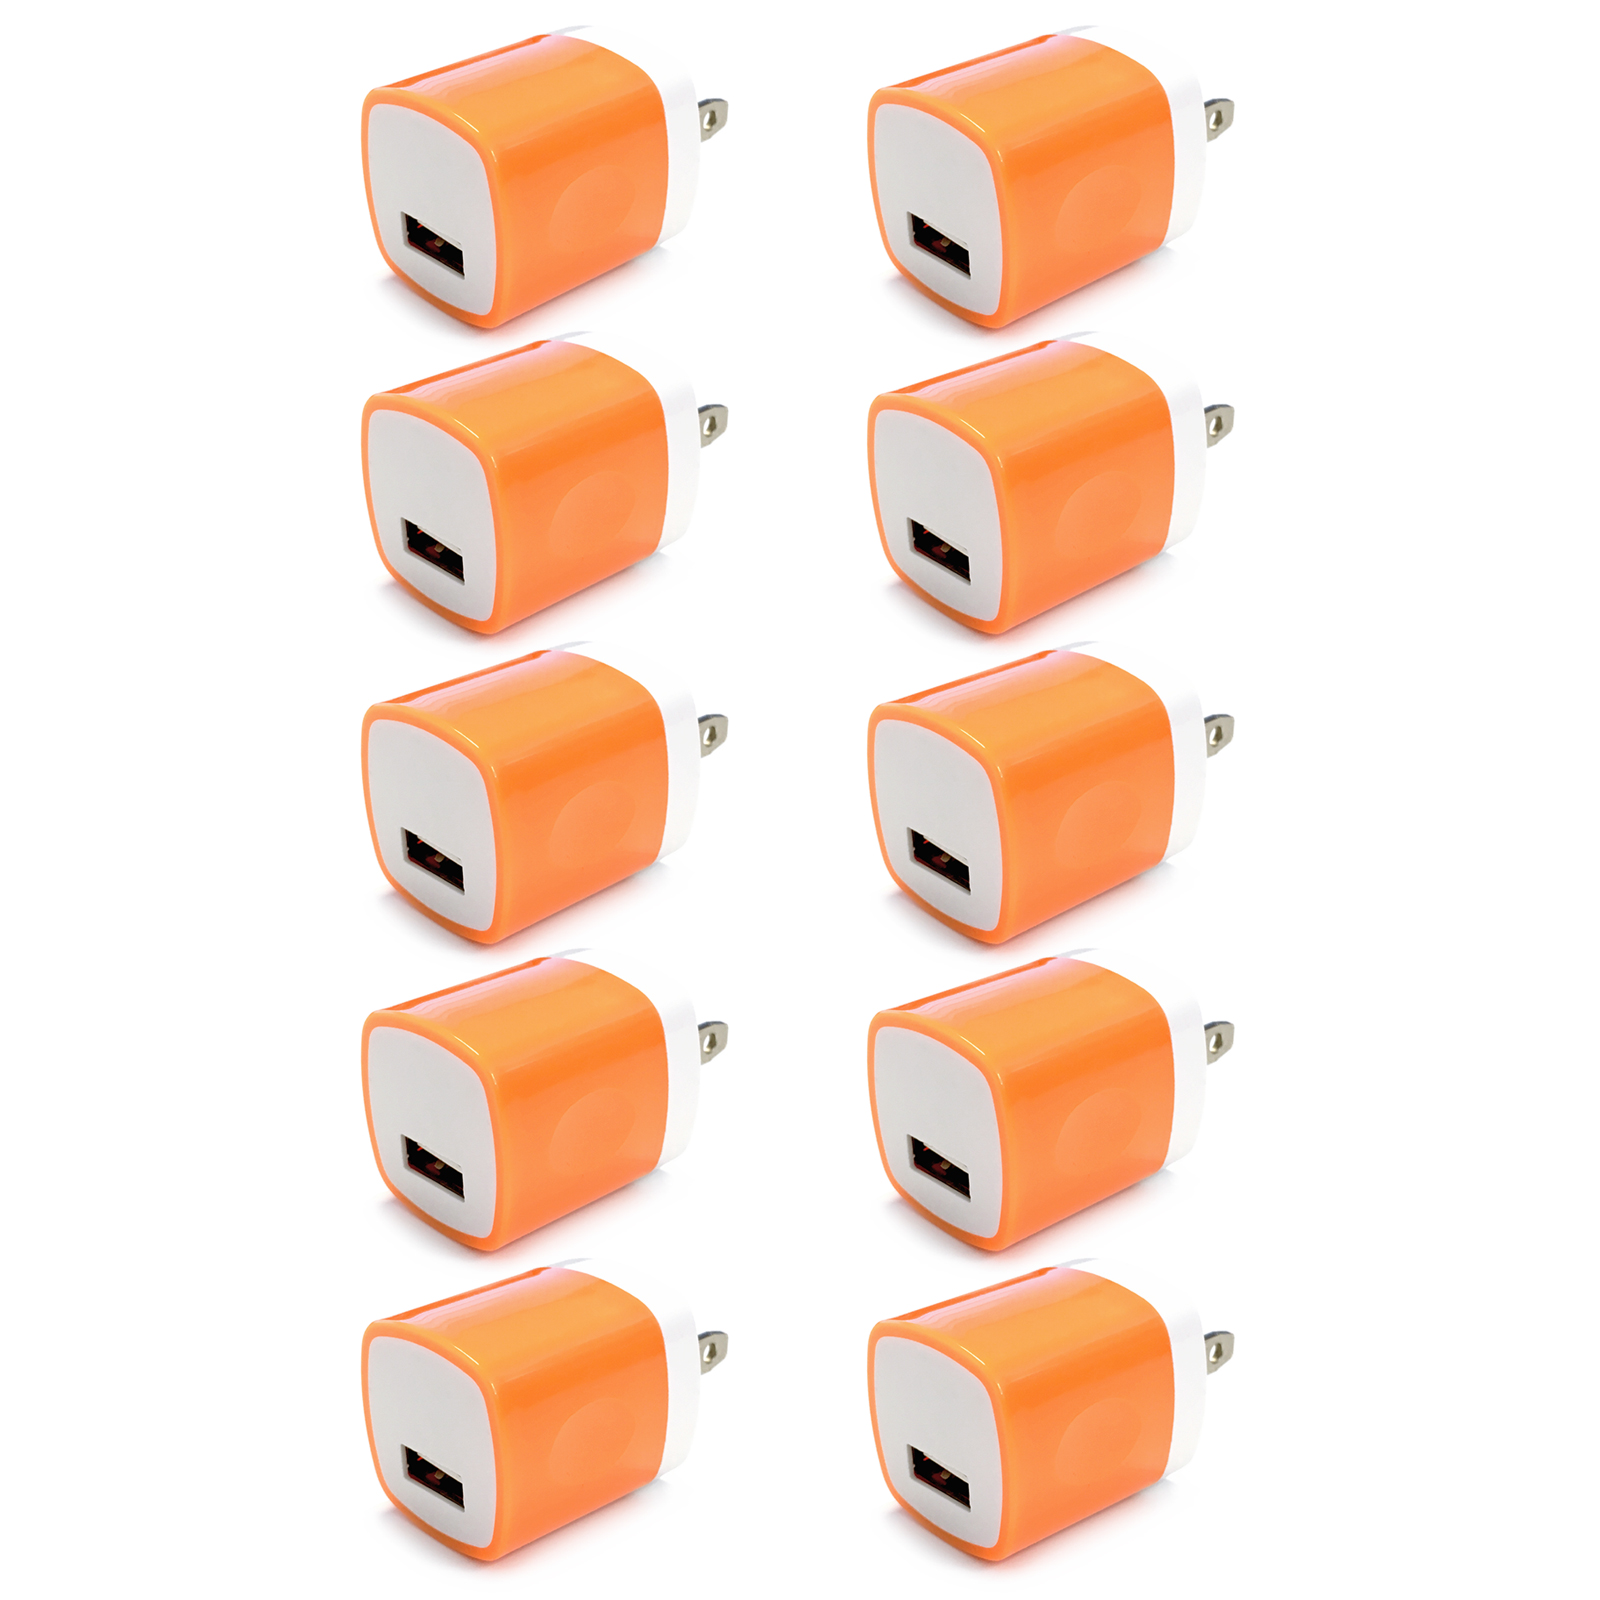 10x USB Wall Charger, Charger Adapter, FREEDOMTECH 1Amp Single Port Quick Charger Plug Cube for iPhone 7/6S/6S Plus/6 Plus/6/5S/5, Samsung Galaxy S7/S6/S5 Edge, LG, HTC, Huawei, Moto, Kindle and More